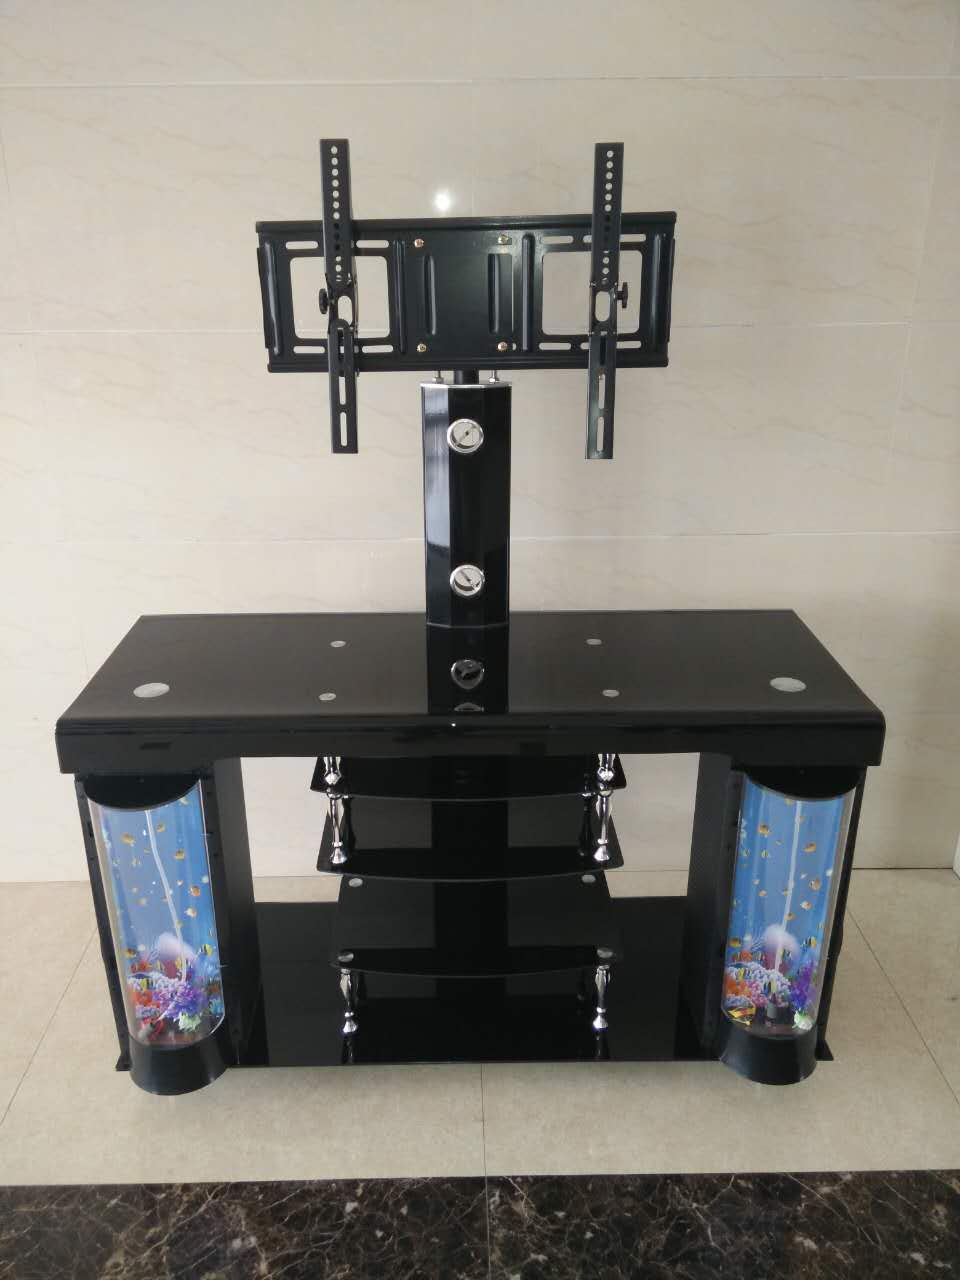 cool living room furniture hot bent glass lcd tv stand bracket   living room/bedroom furniture hot bent glass lcd TV stand ...